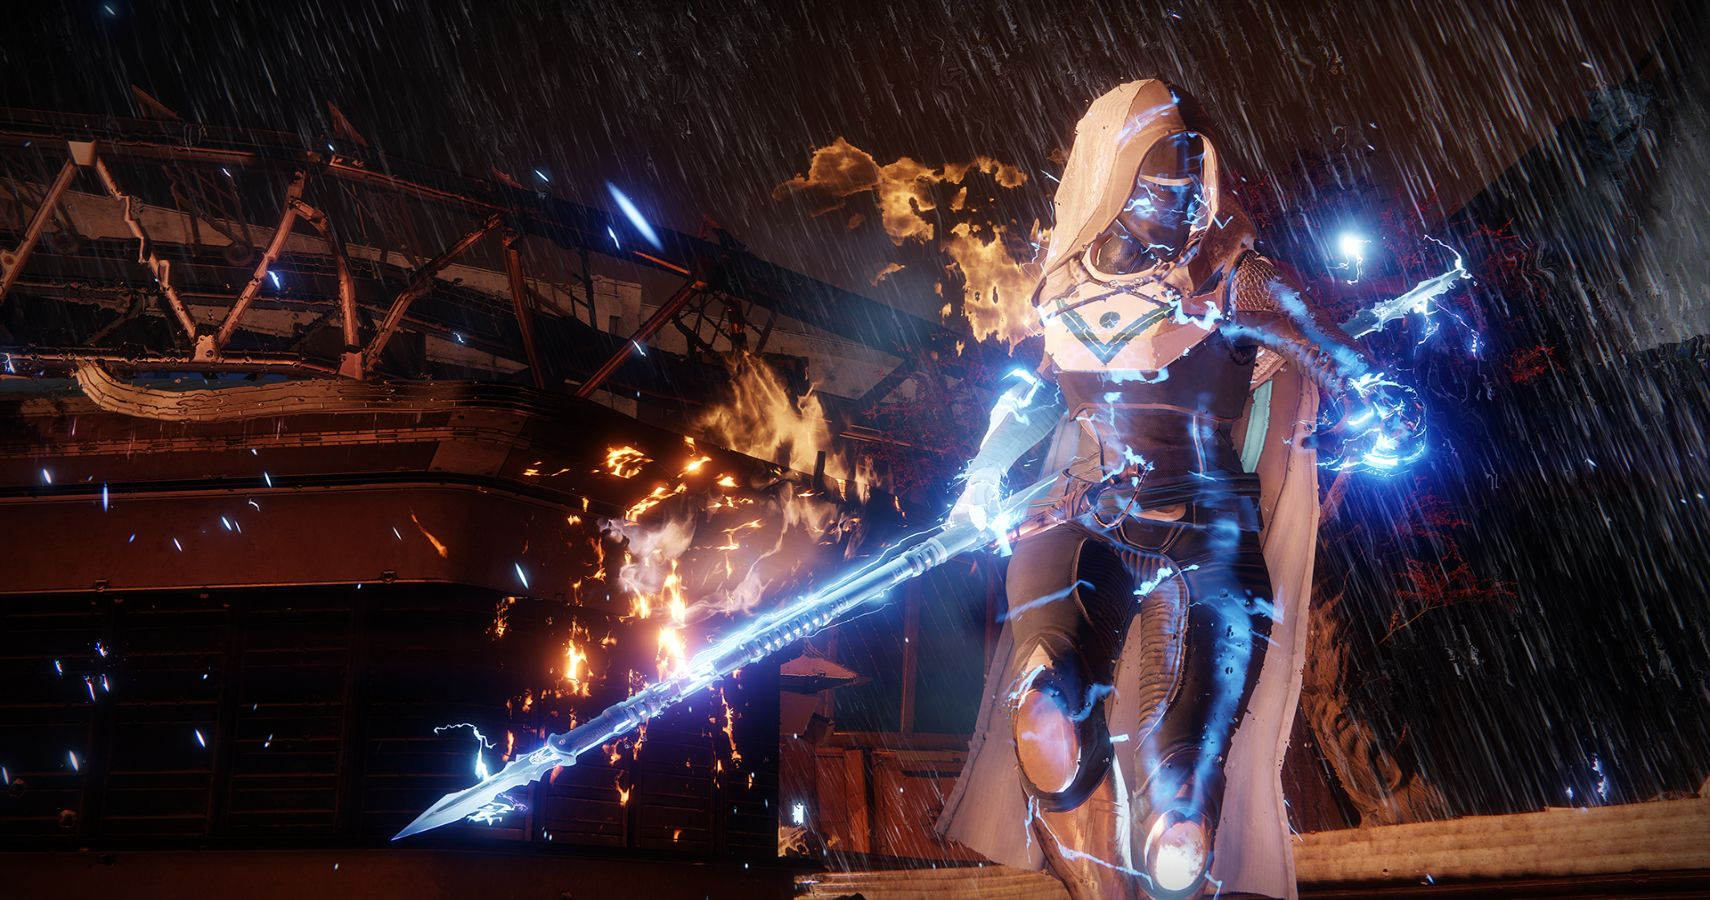 Destiny 2: How To Use The Tribute Hall Glitch To Get